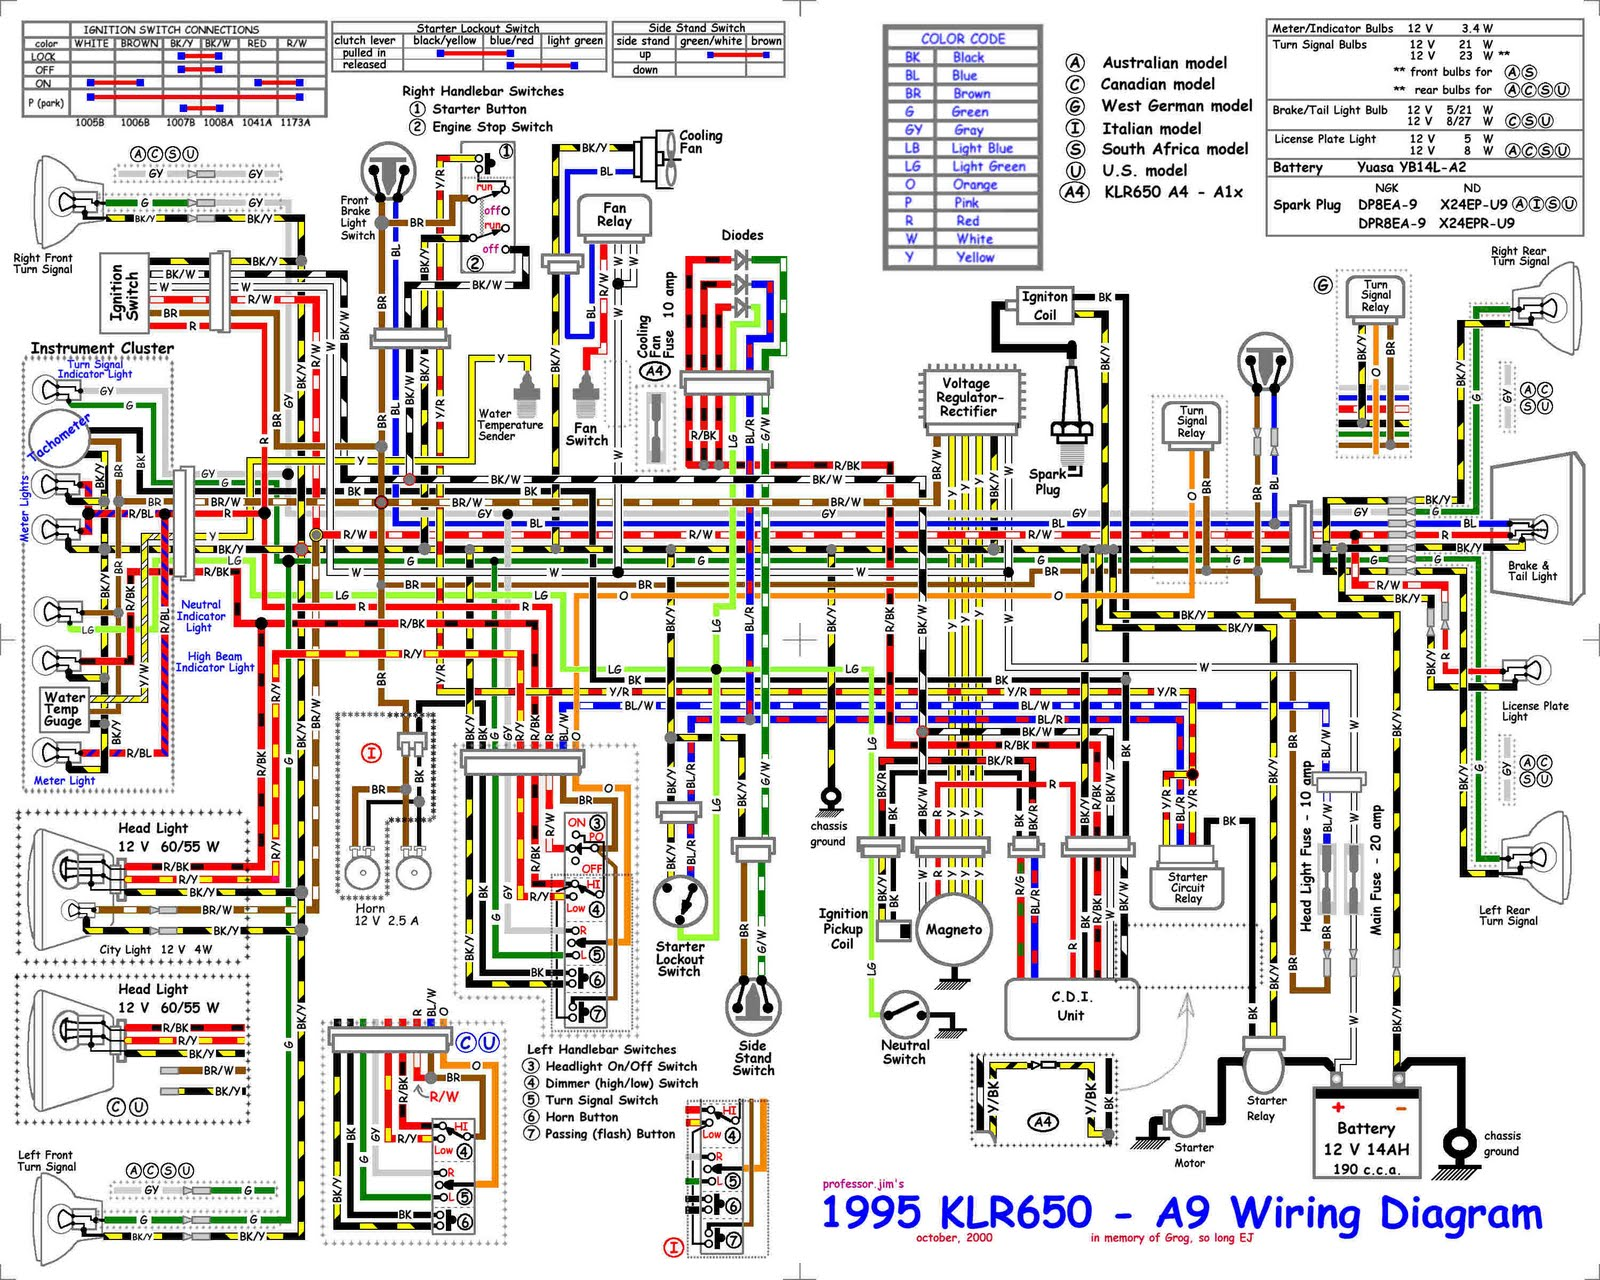 1974 monte carlo wiring diagram auto wiring diagrams premium automotive electrical wiring diagrams 1981 Chevy Engine Wiring Diagram at mifinder.co